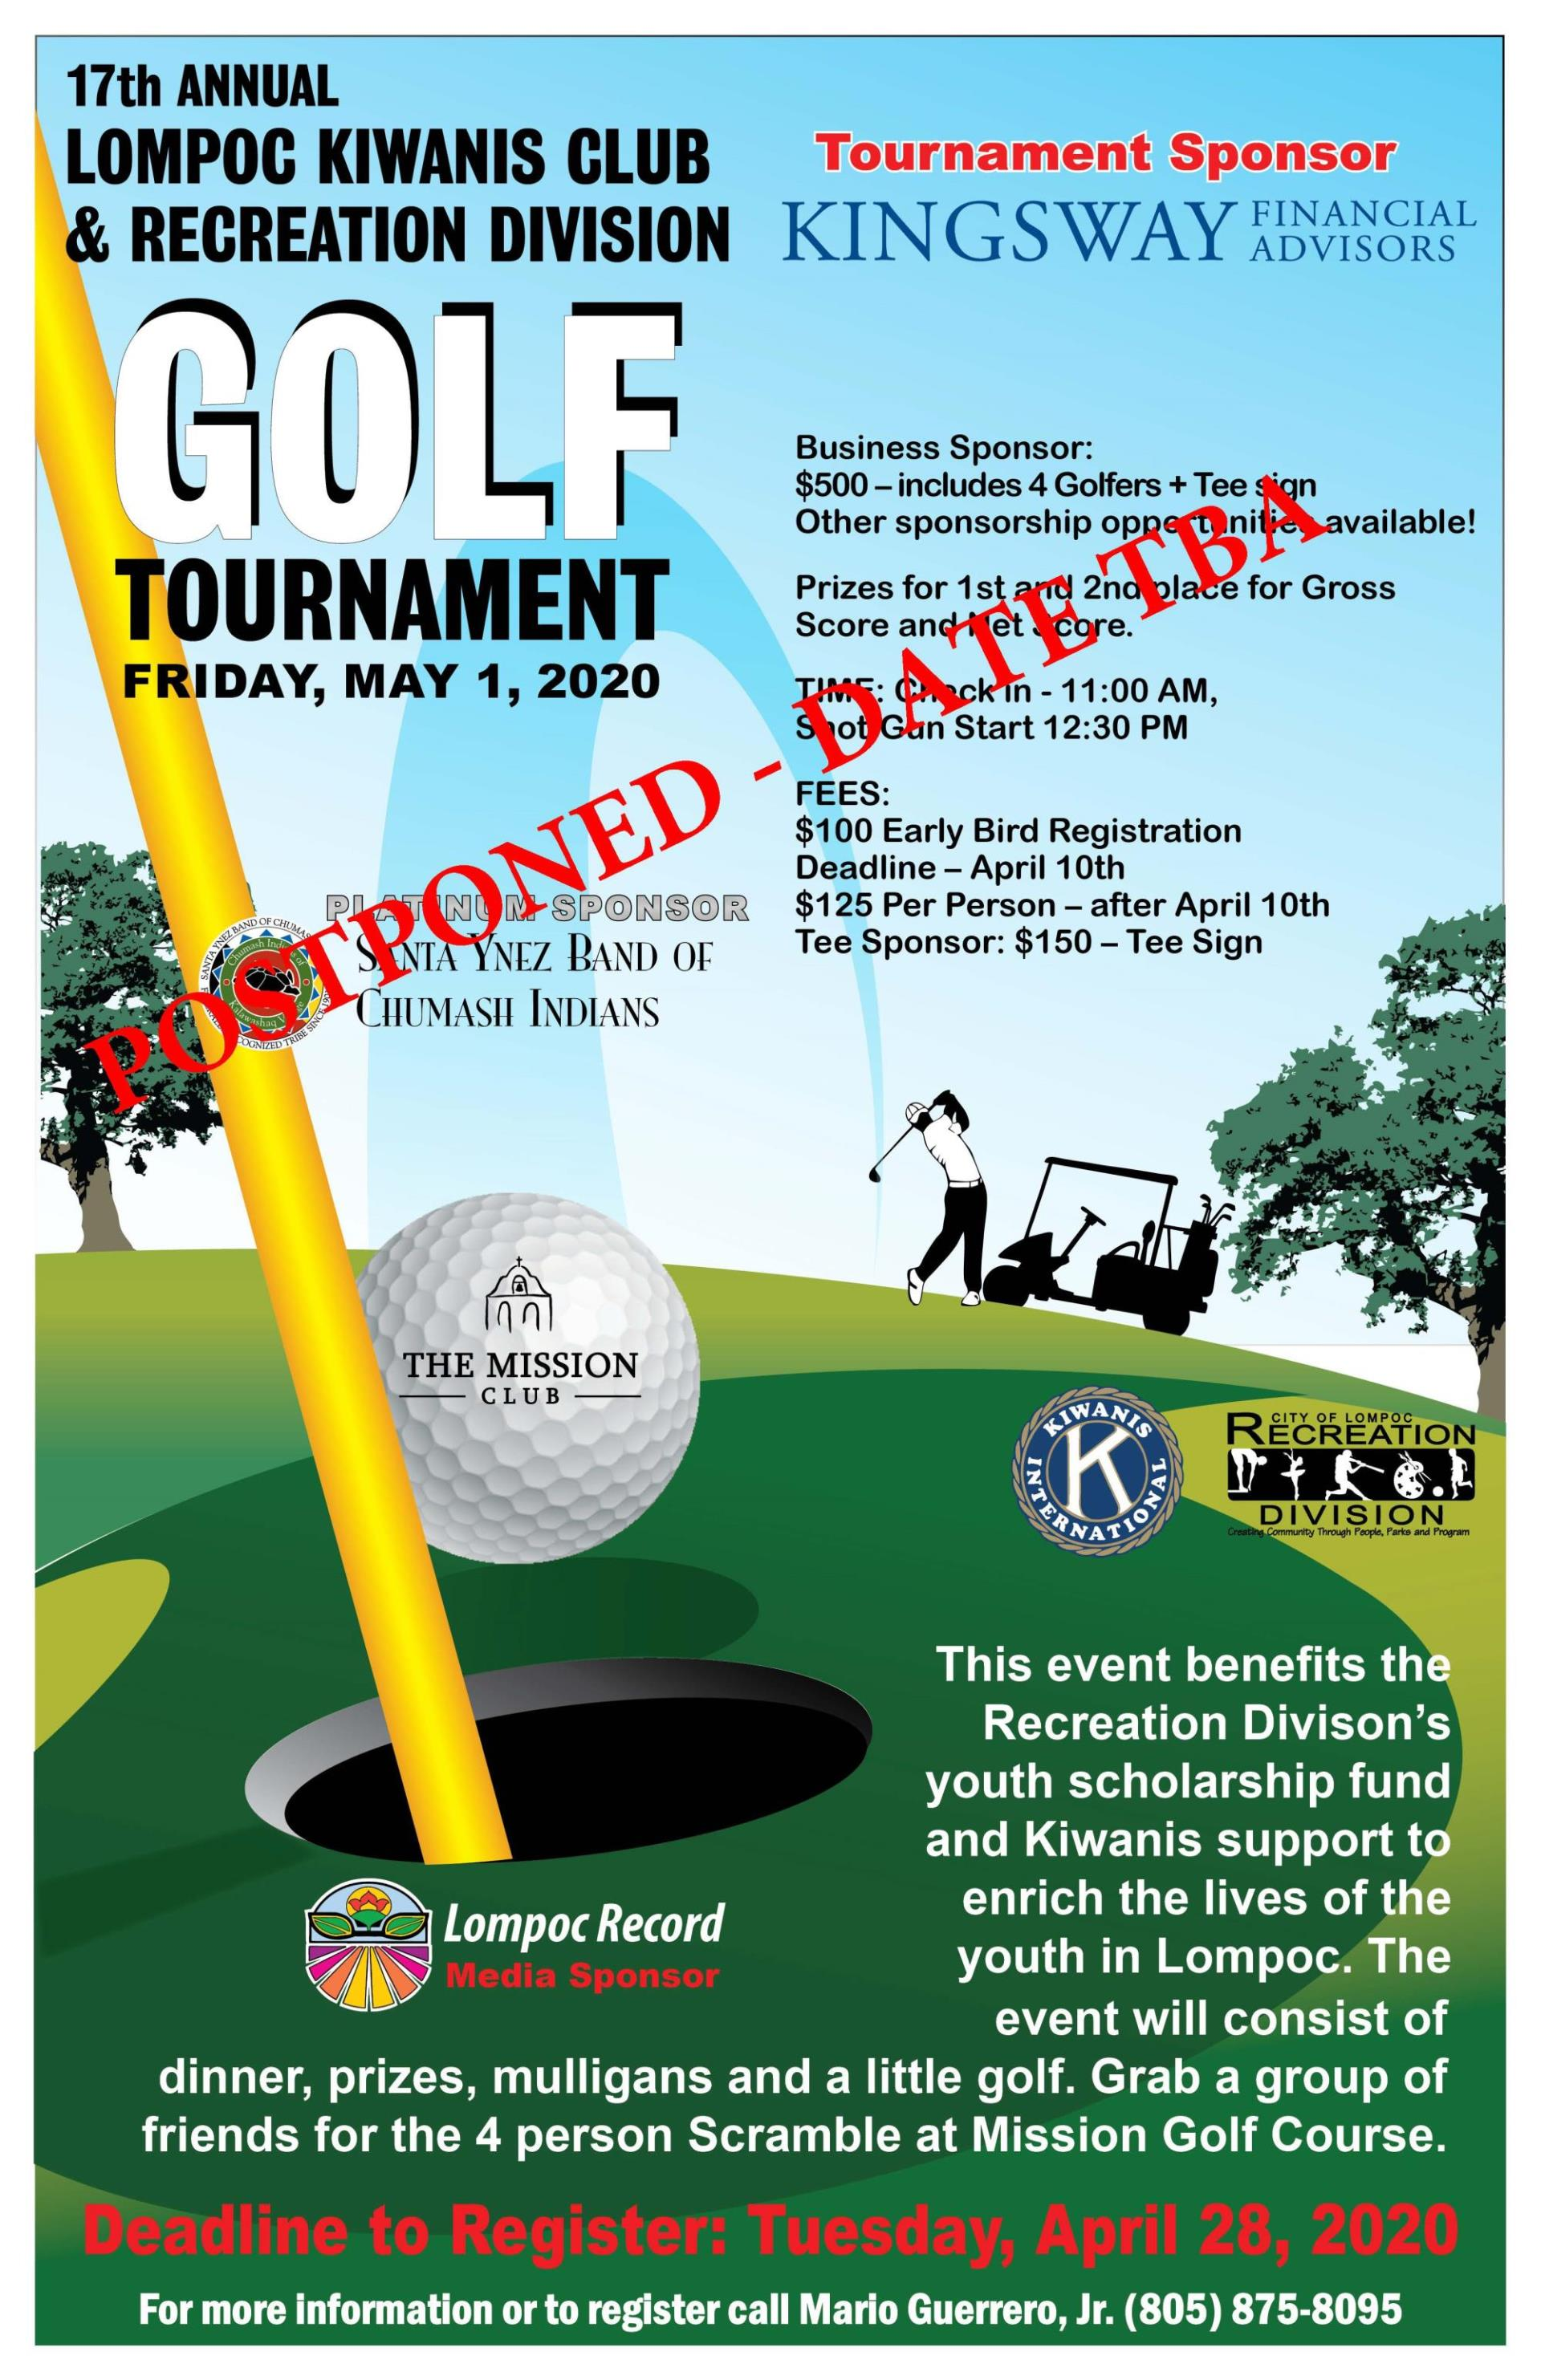 LPRD_PAL 17th Annual Golf 2020 Poster_2020_02_10_POSTPONED